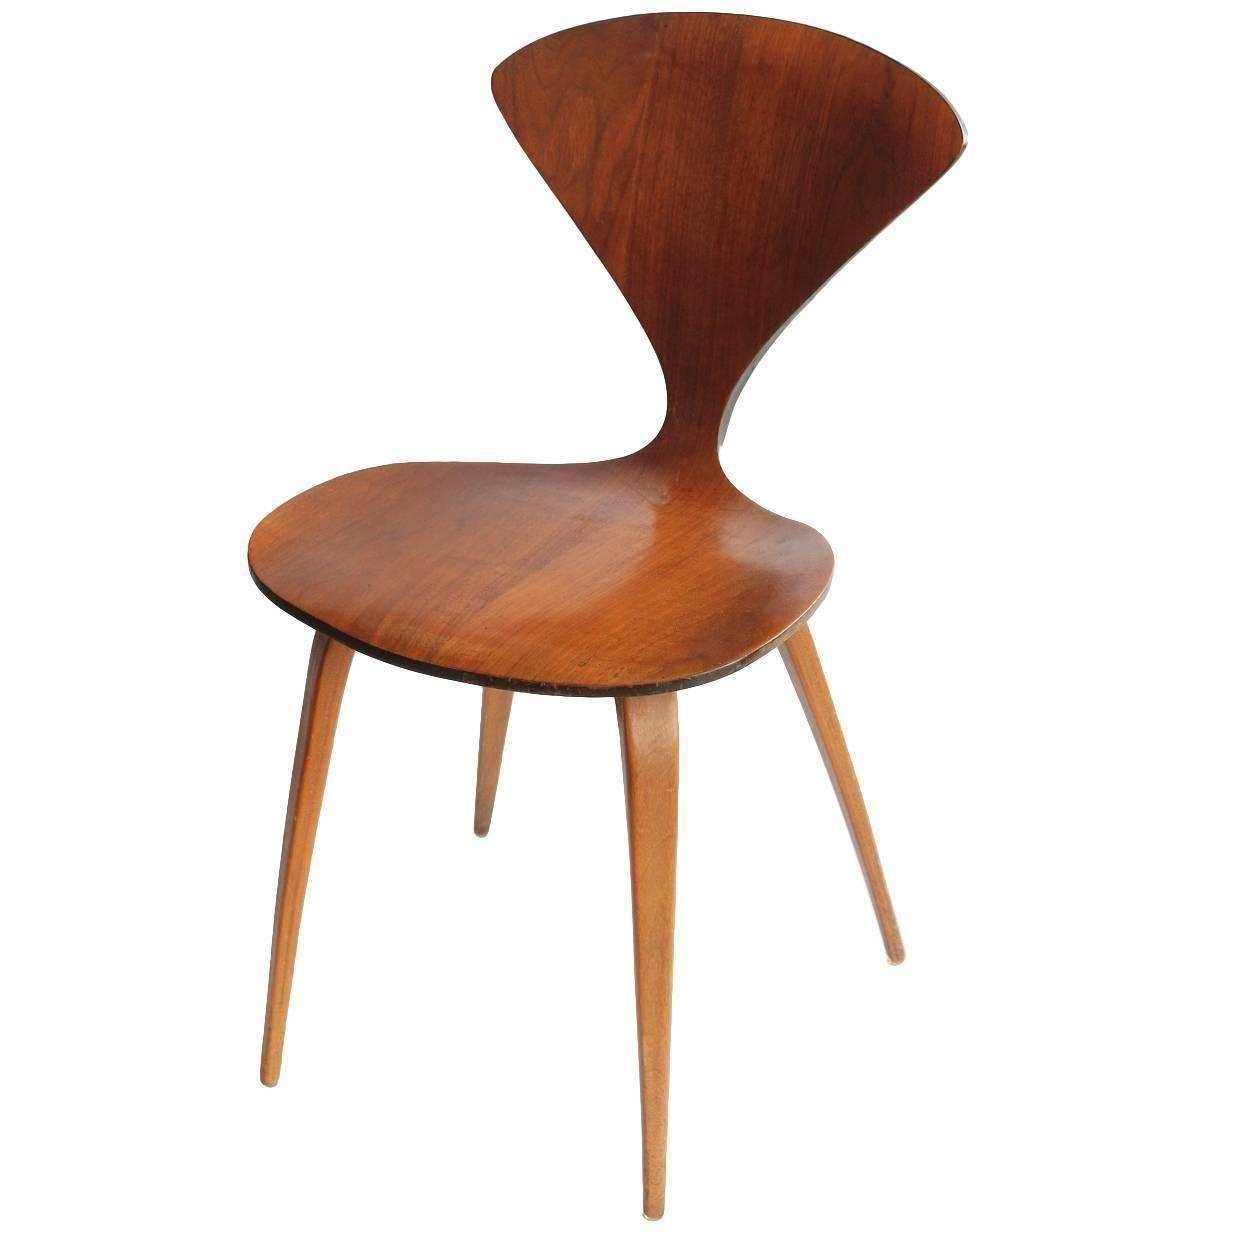 Z Chair For Sale Plycraft Wood Chair By Norman Cherner For Sale At 1stdibs